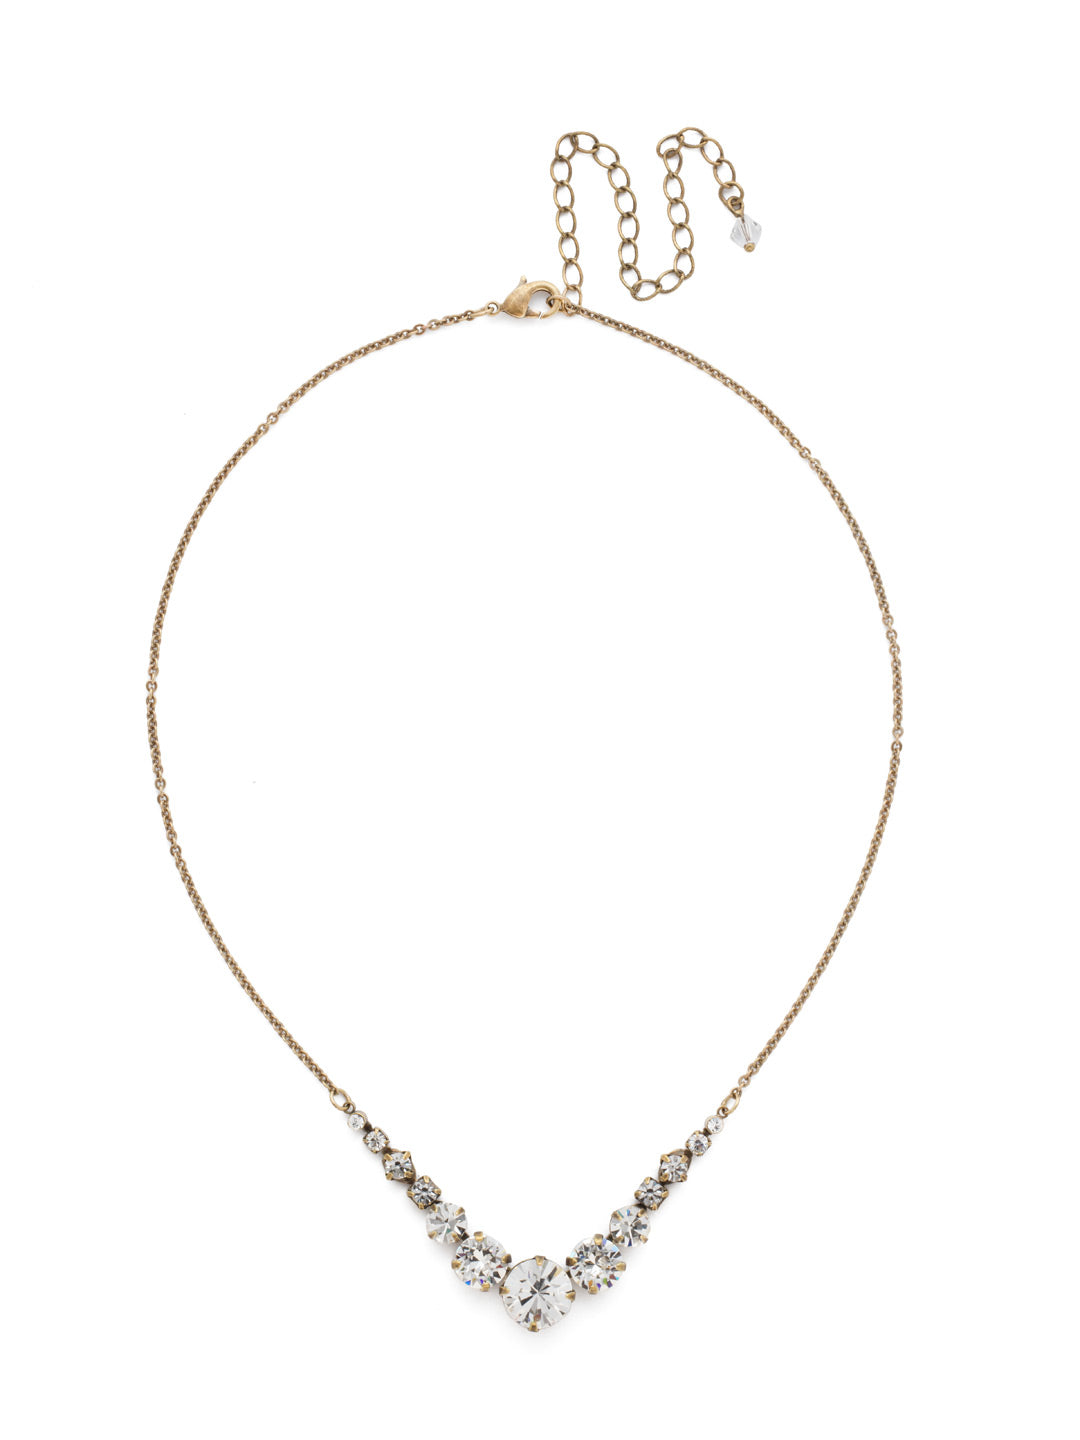 Delicate Round Tennis Necklace - NCQ14AGCRY